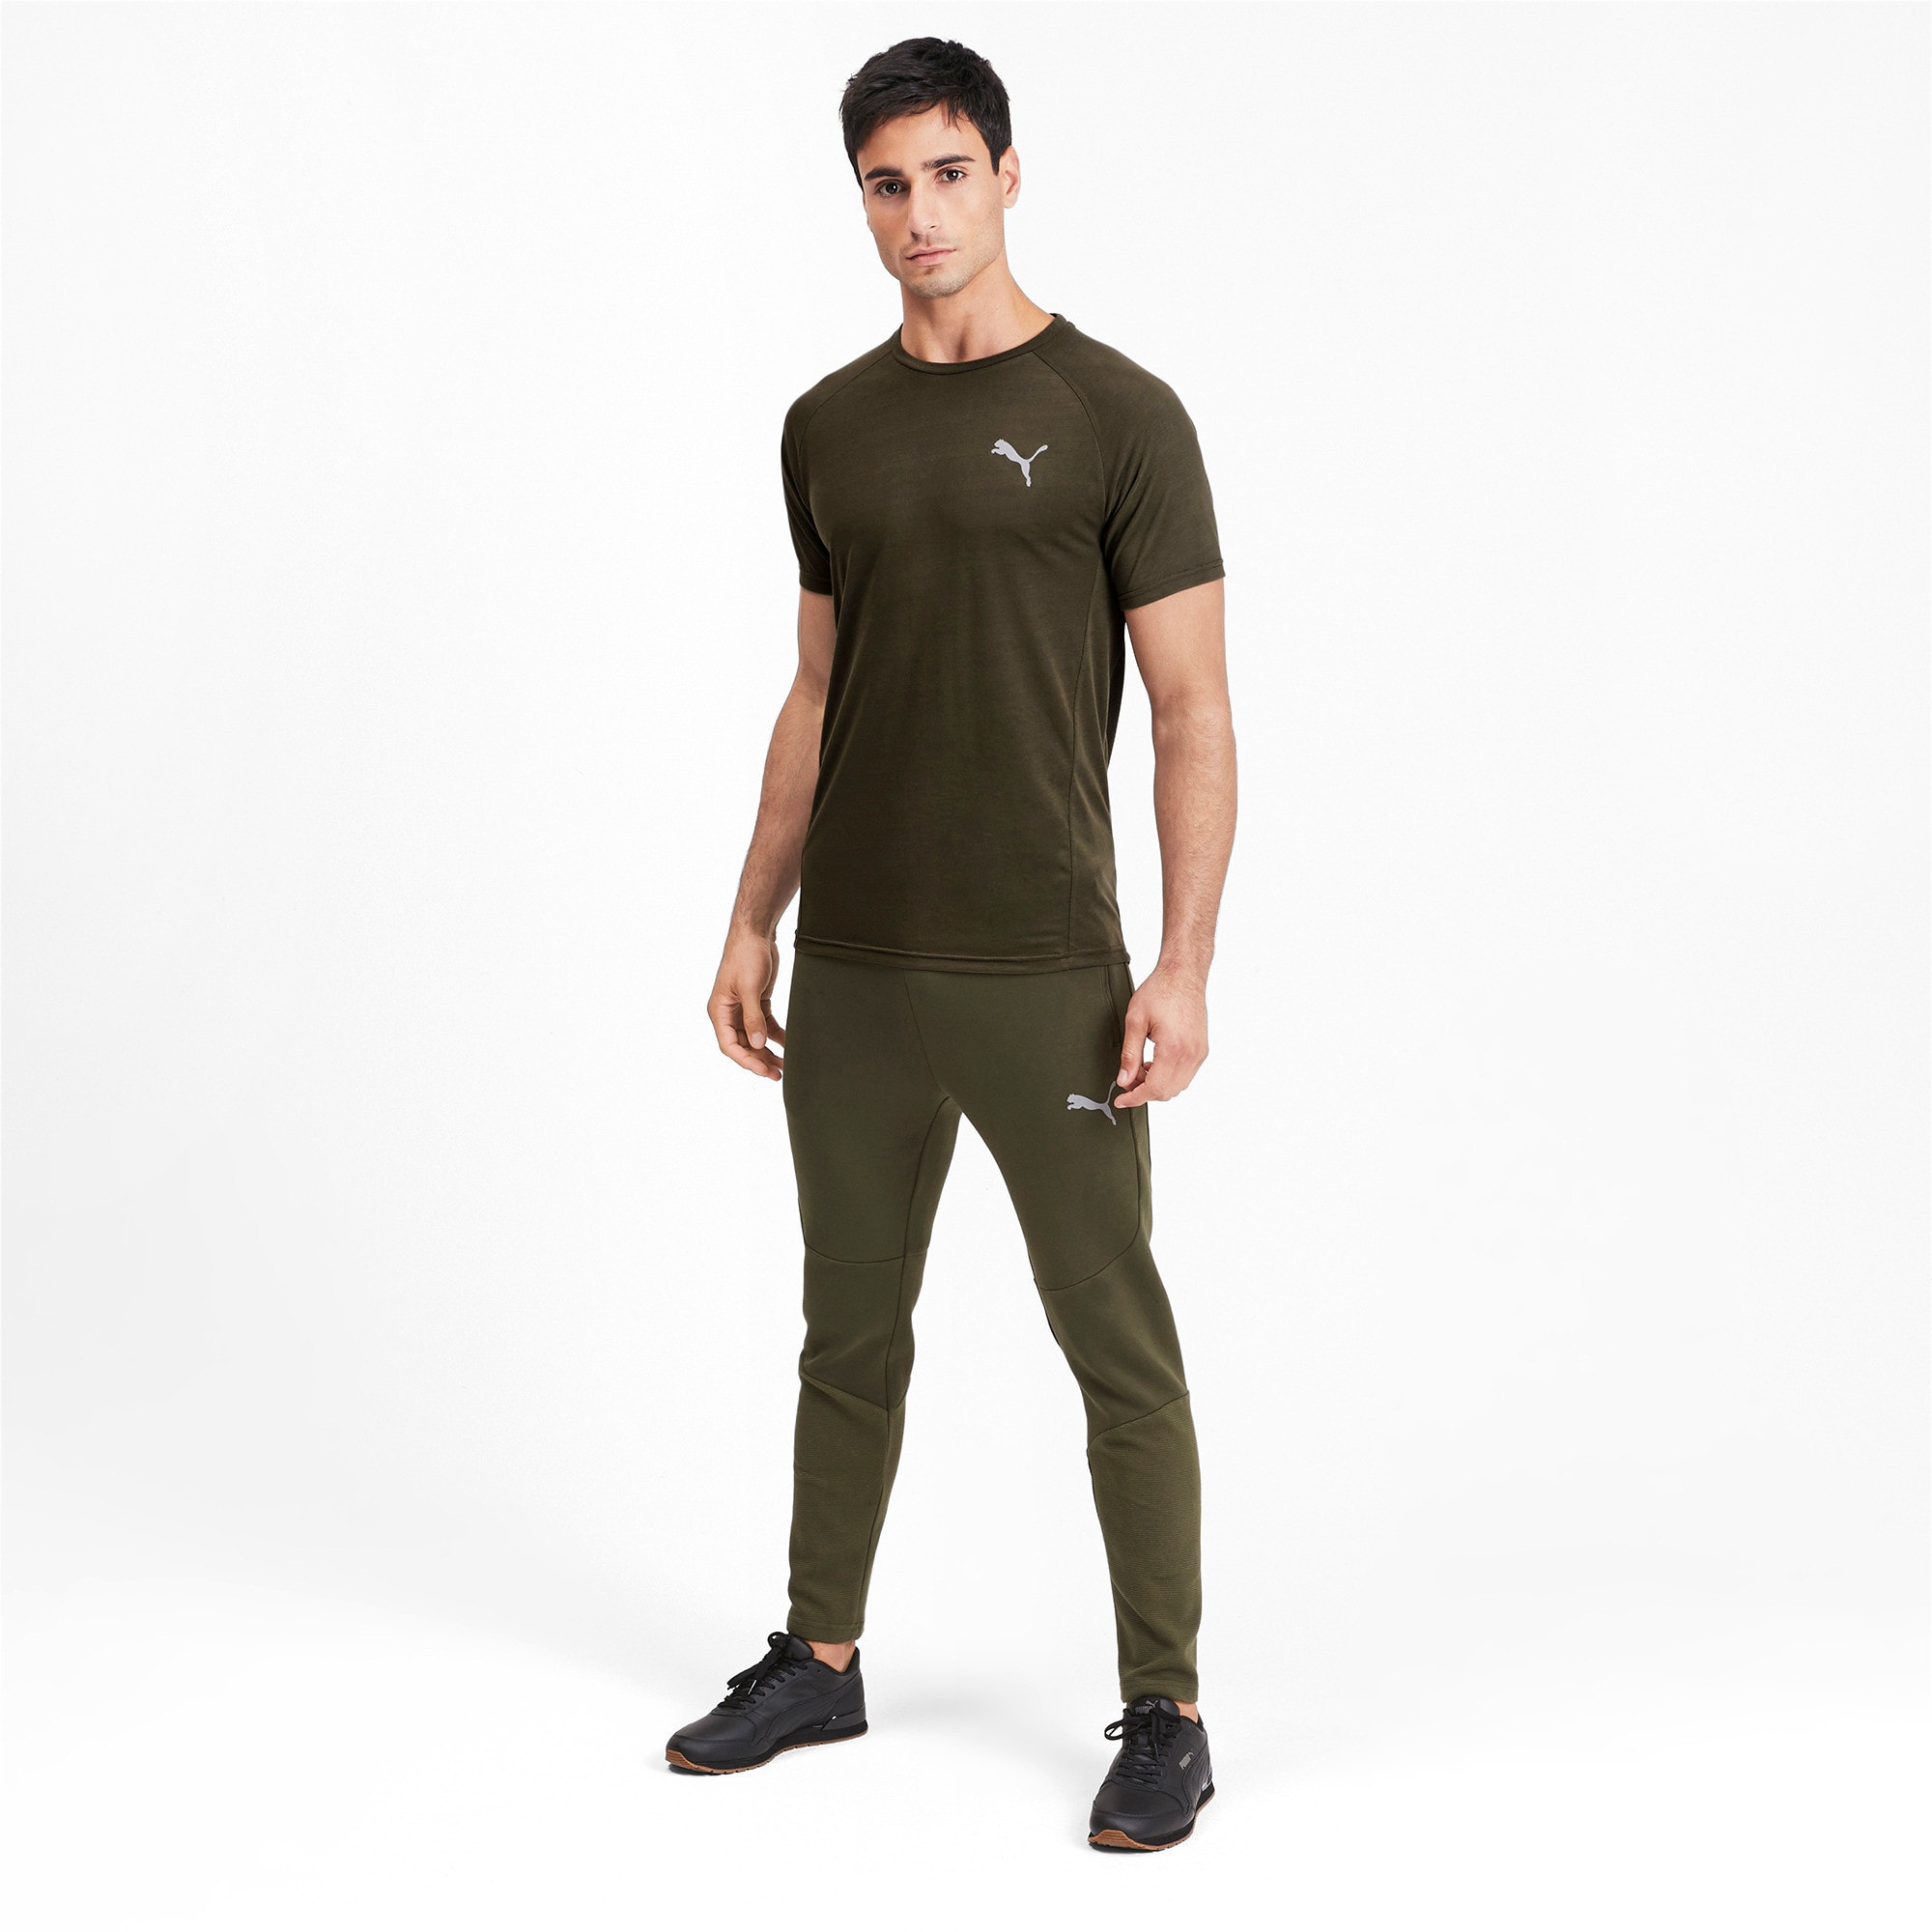 Thumbnail 3 of Evostripe Short Sleeve Men's Tee, Forest Night, medium-IND